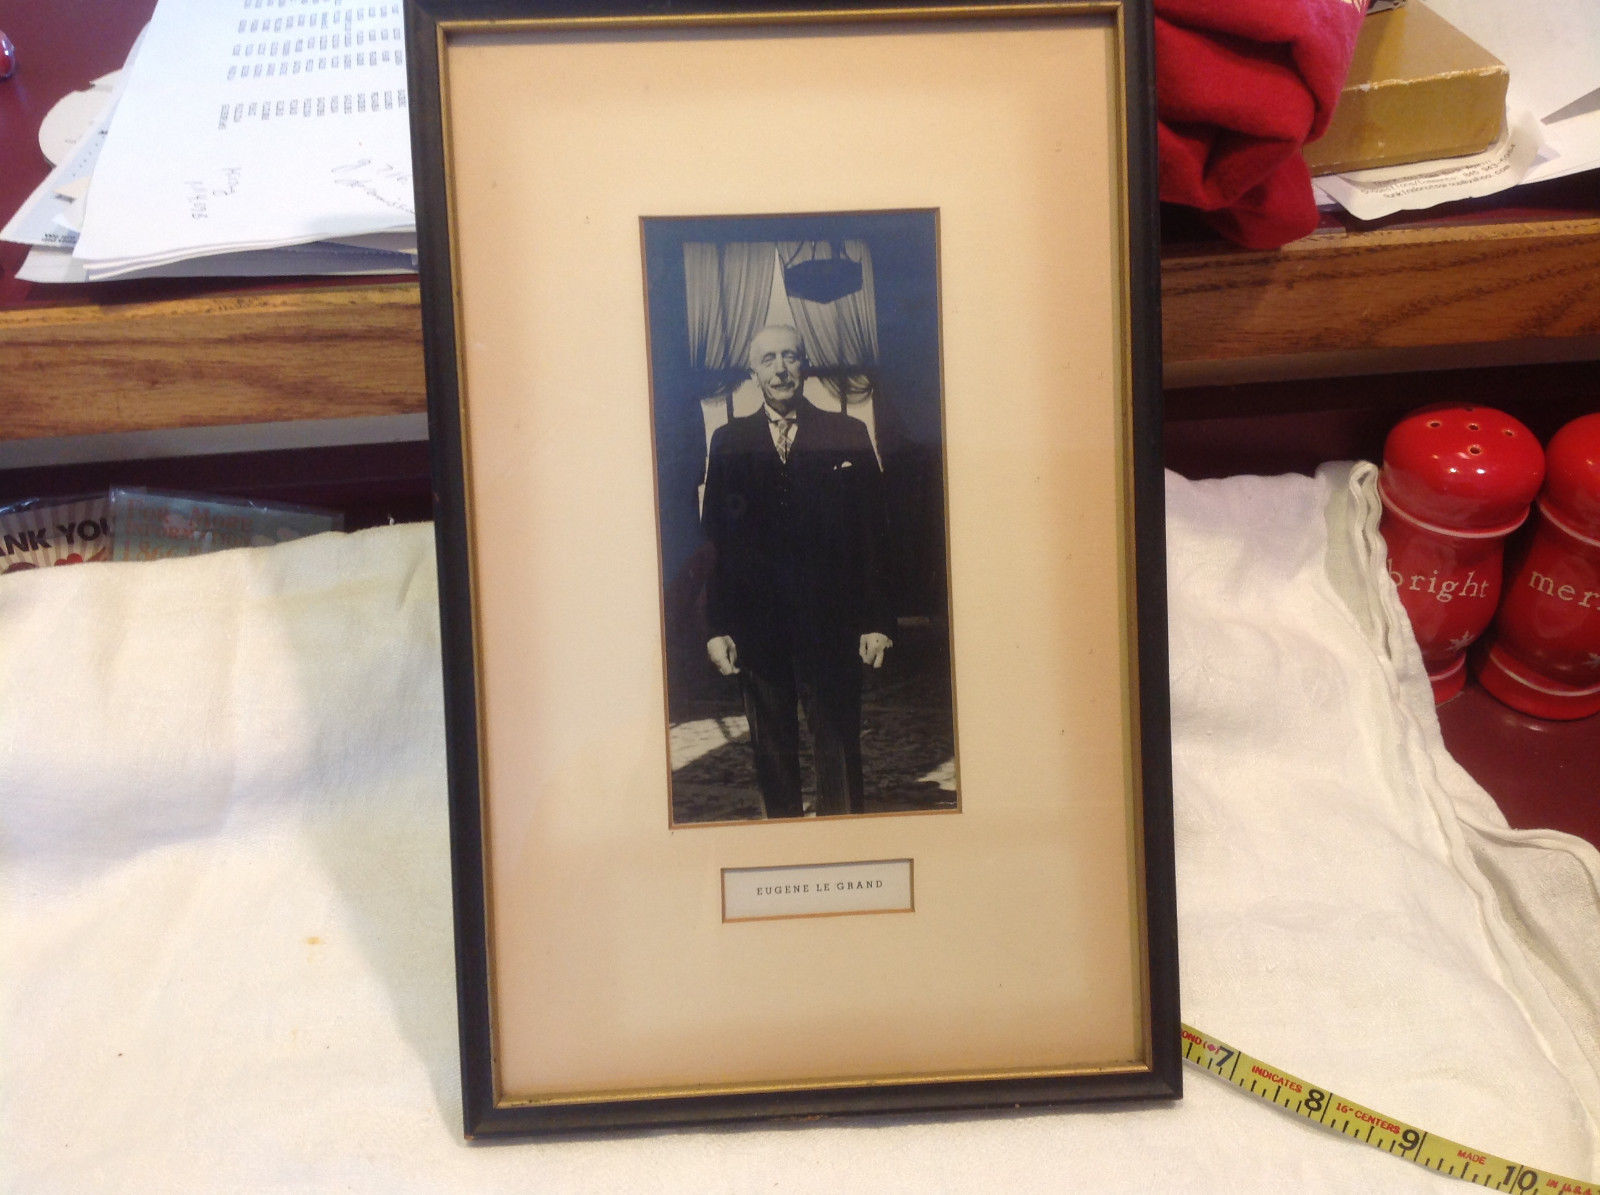 Vintage framed matted photograph of Eugene Le Grand